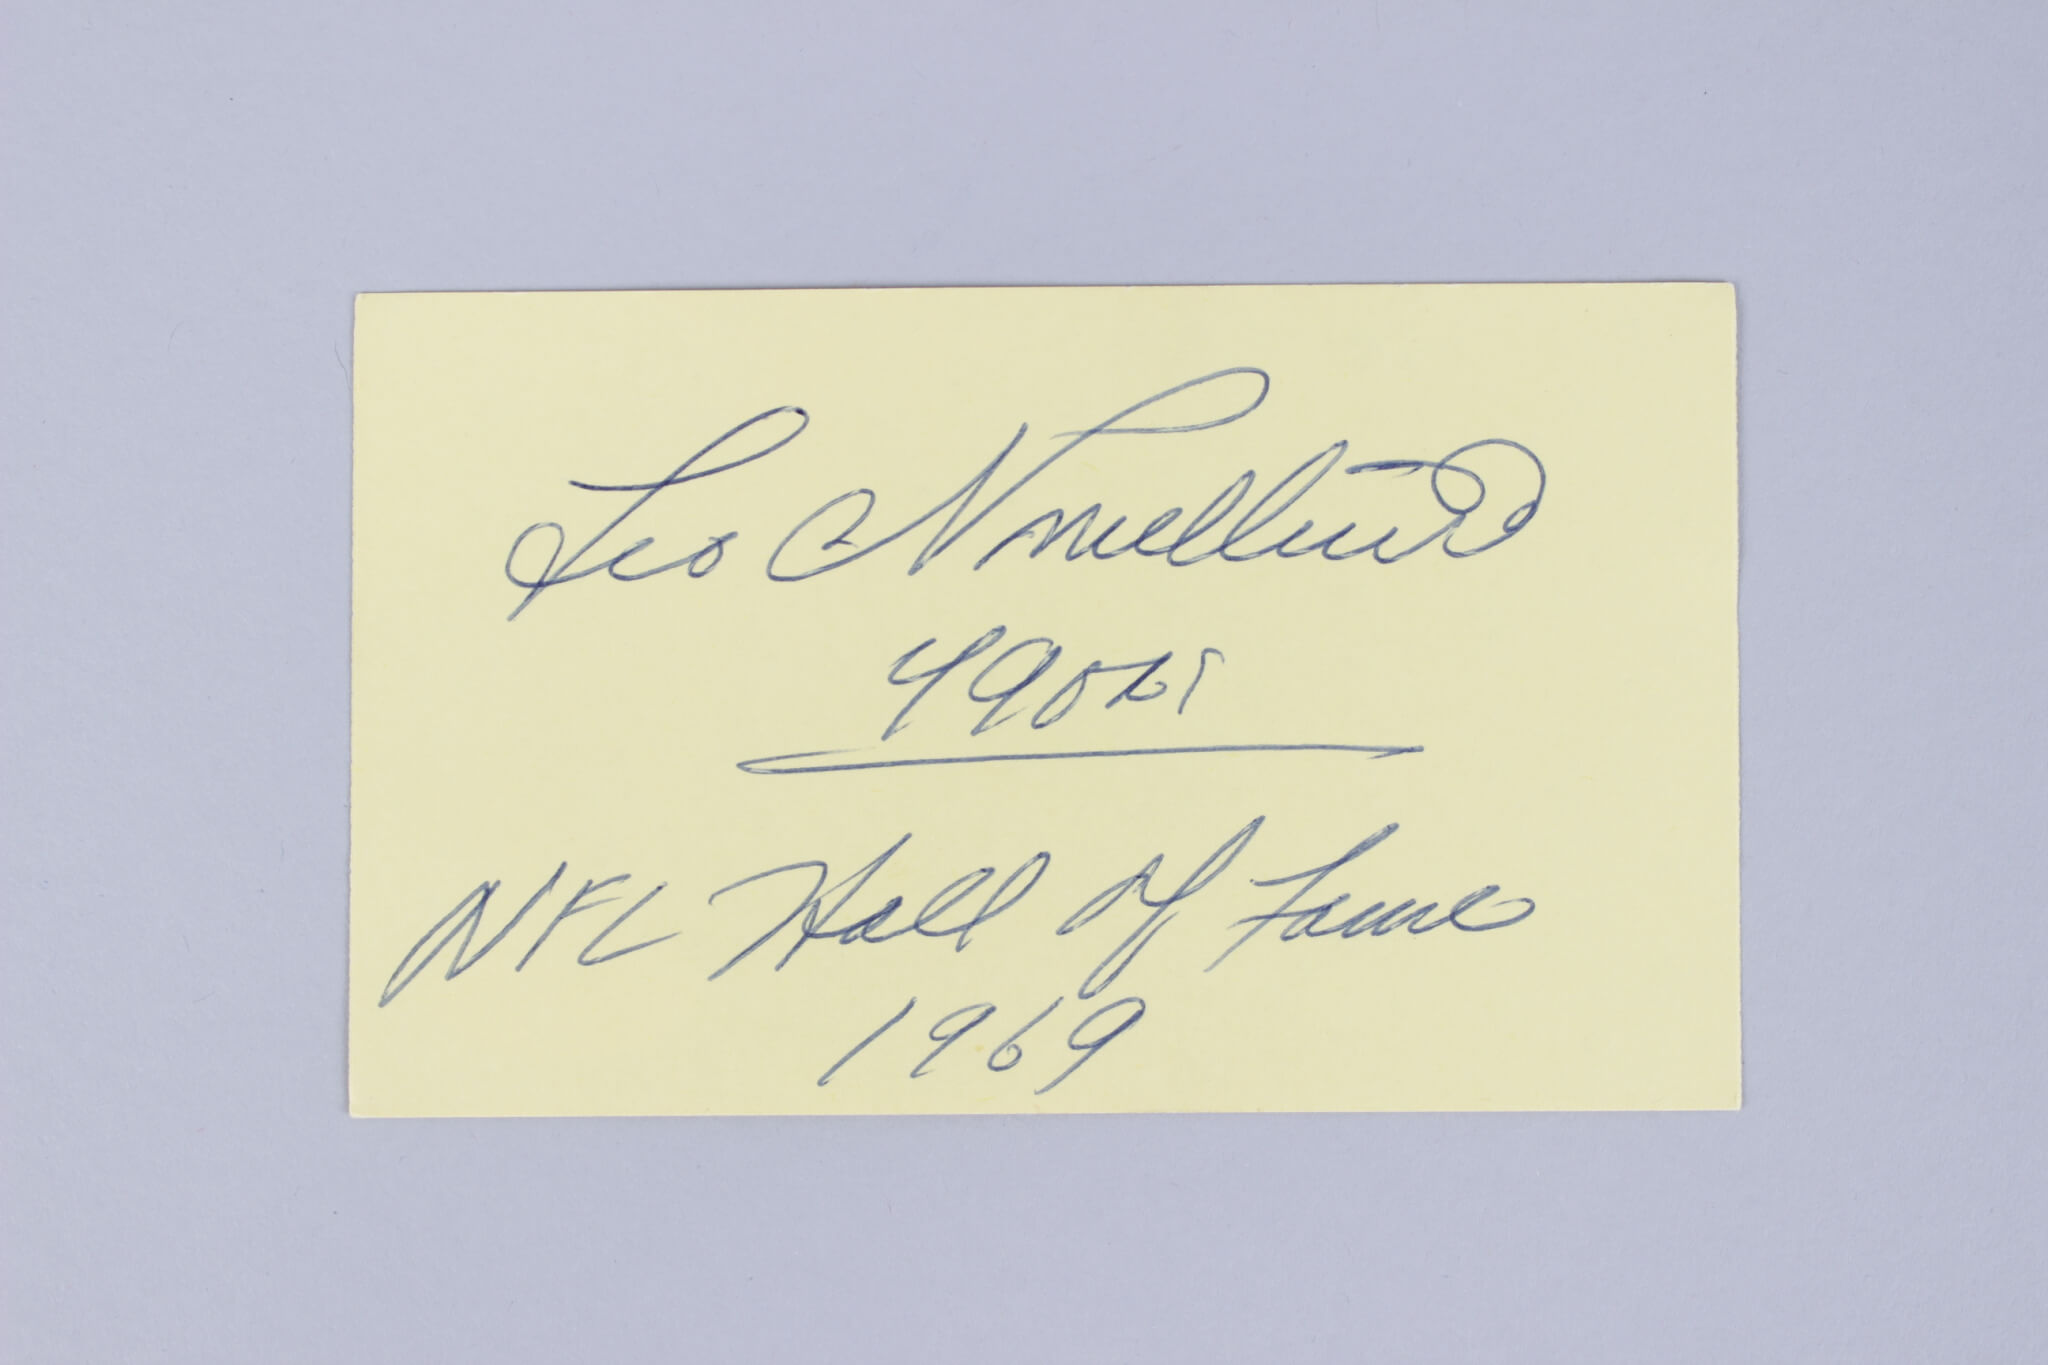 San Francisco 49ers – Leo Nomellini Signed & Inscribed 3×5 Index Card – COA JSA59907_01